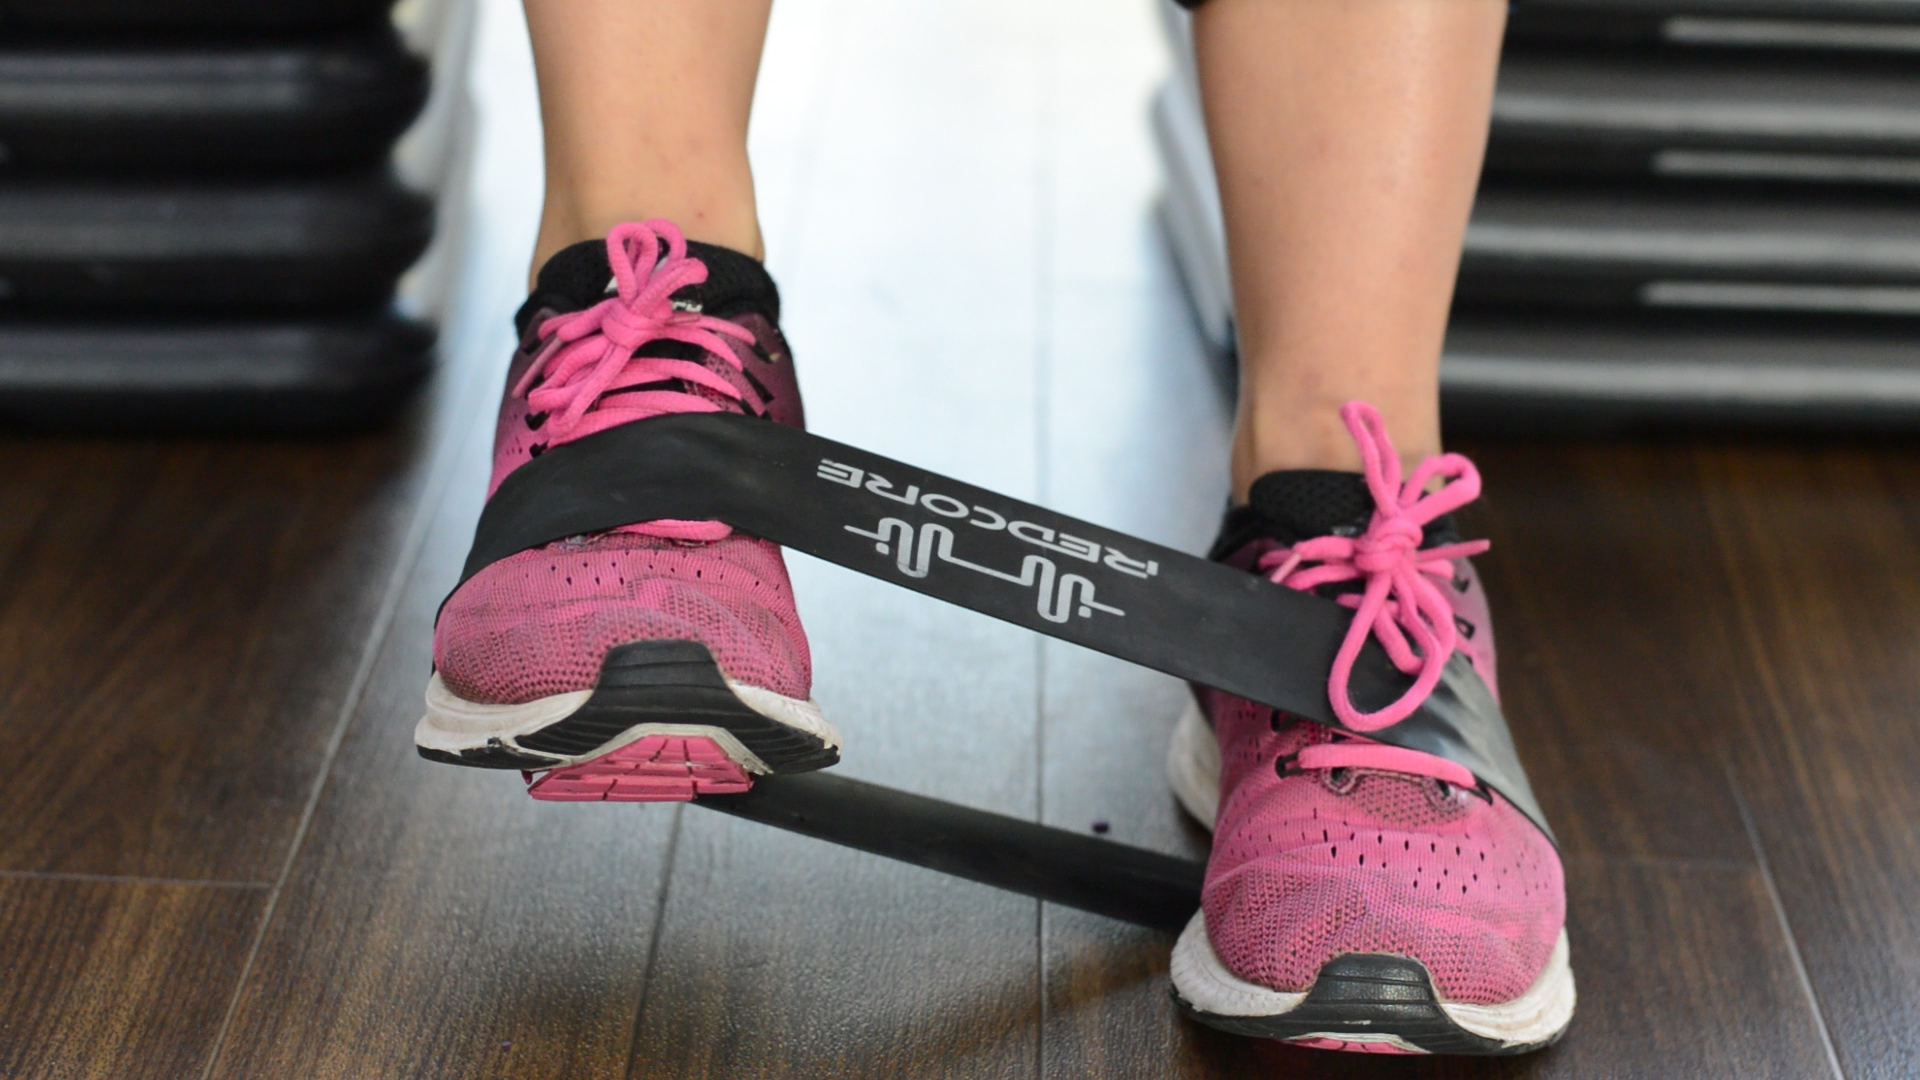 Ankle eversion strengthening technique